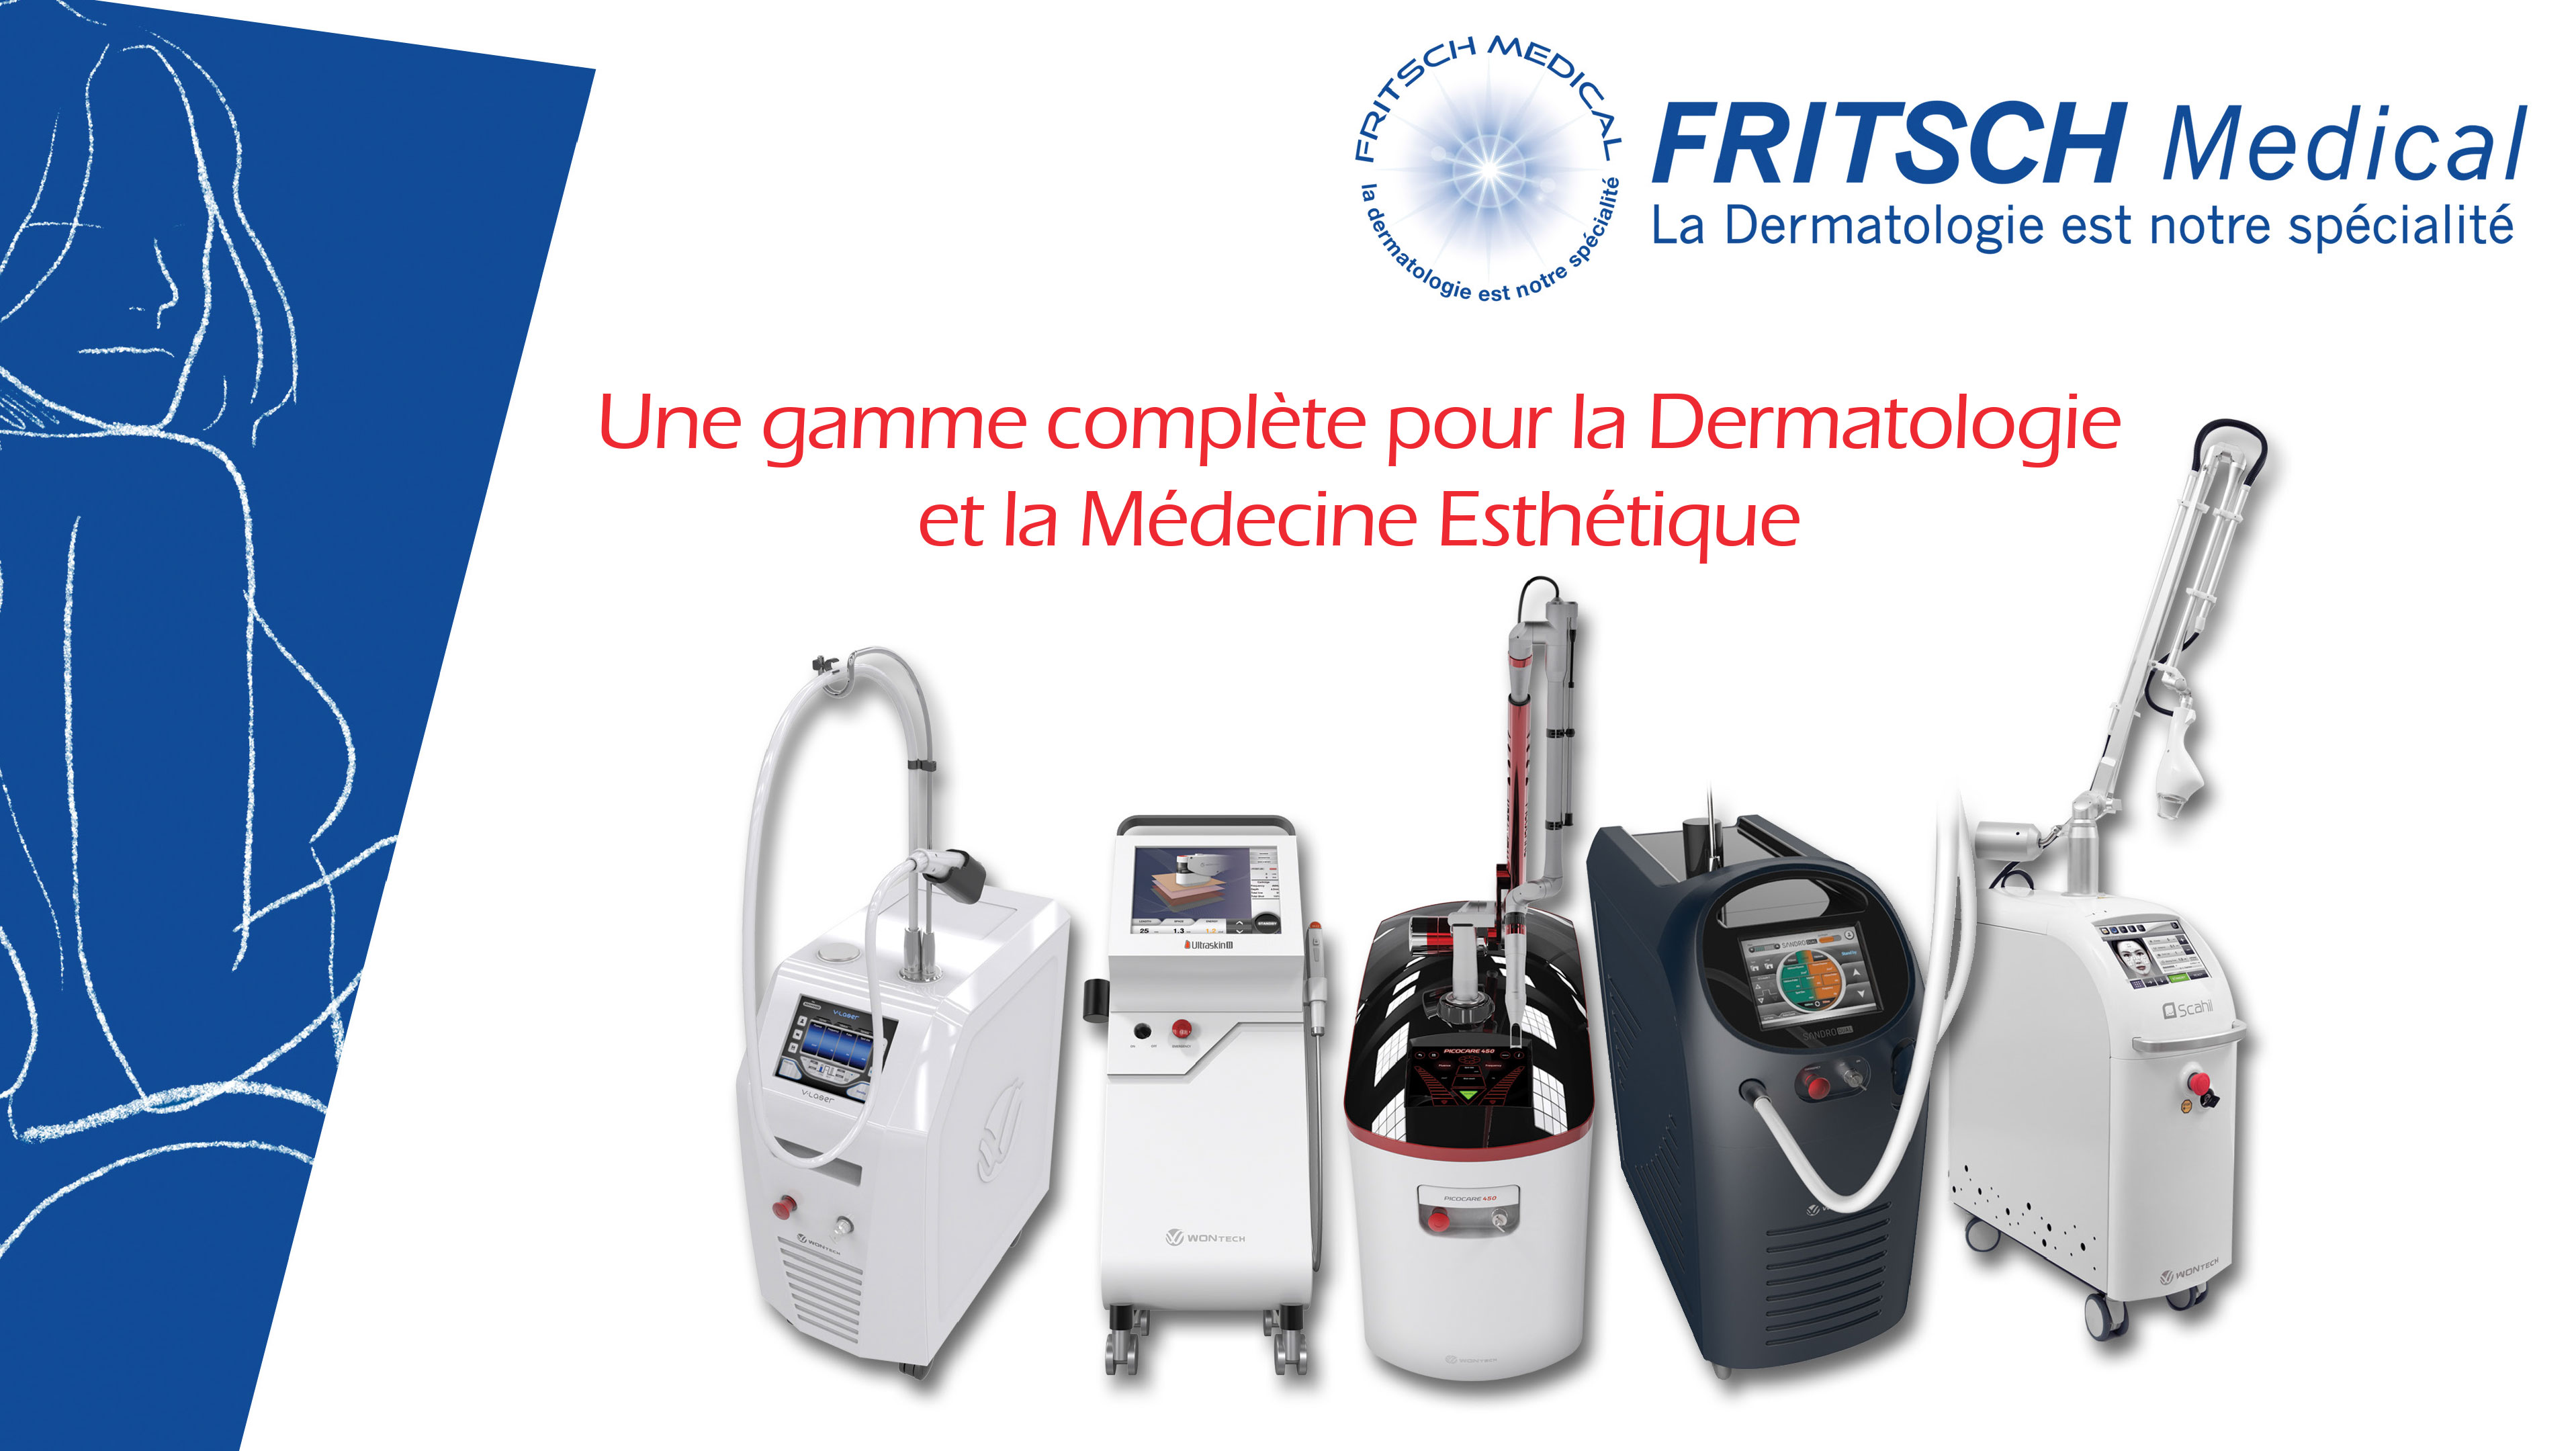 Catalogue FRITSCH Medical 2020